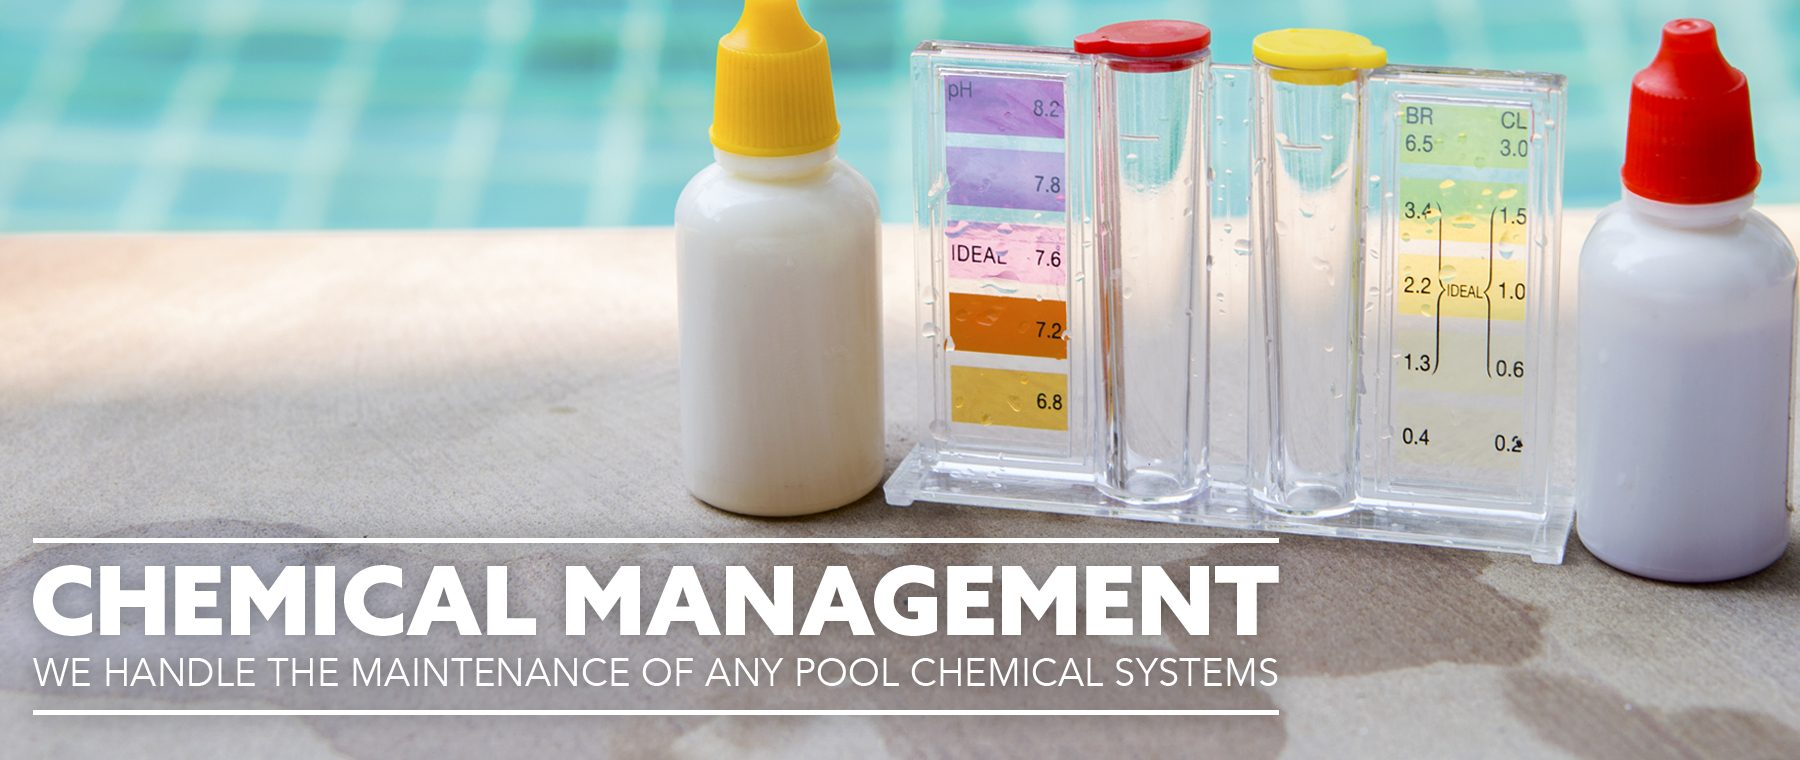 chemical_management